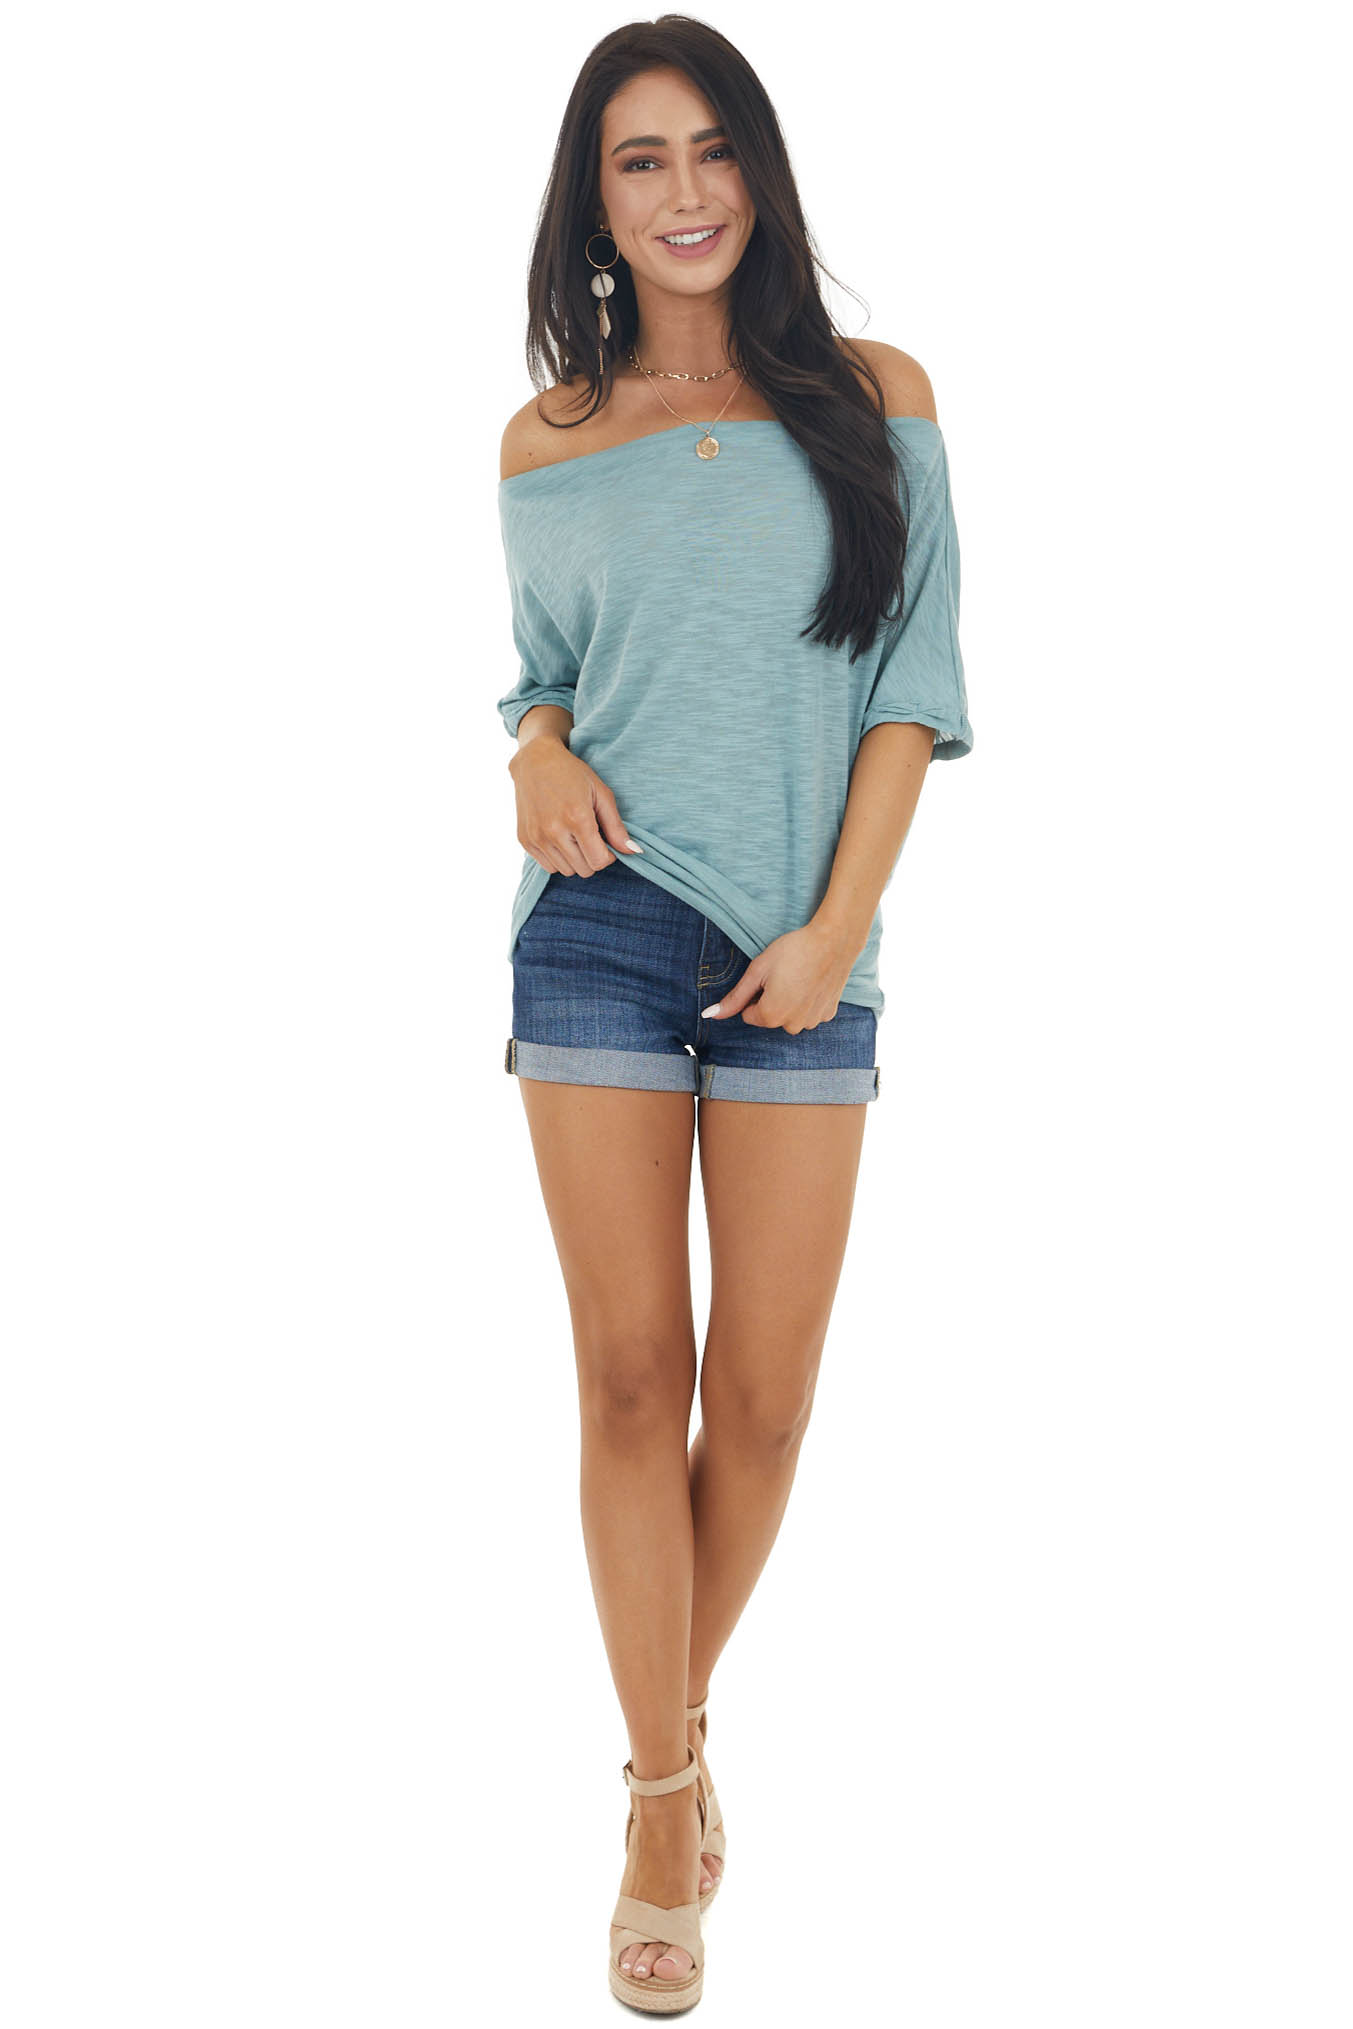 Heathered Teal Off Shoulder Top with Short Dolman Sleeves